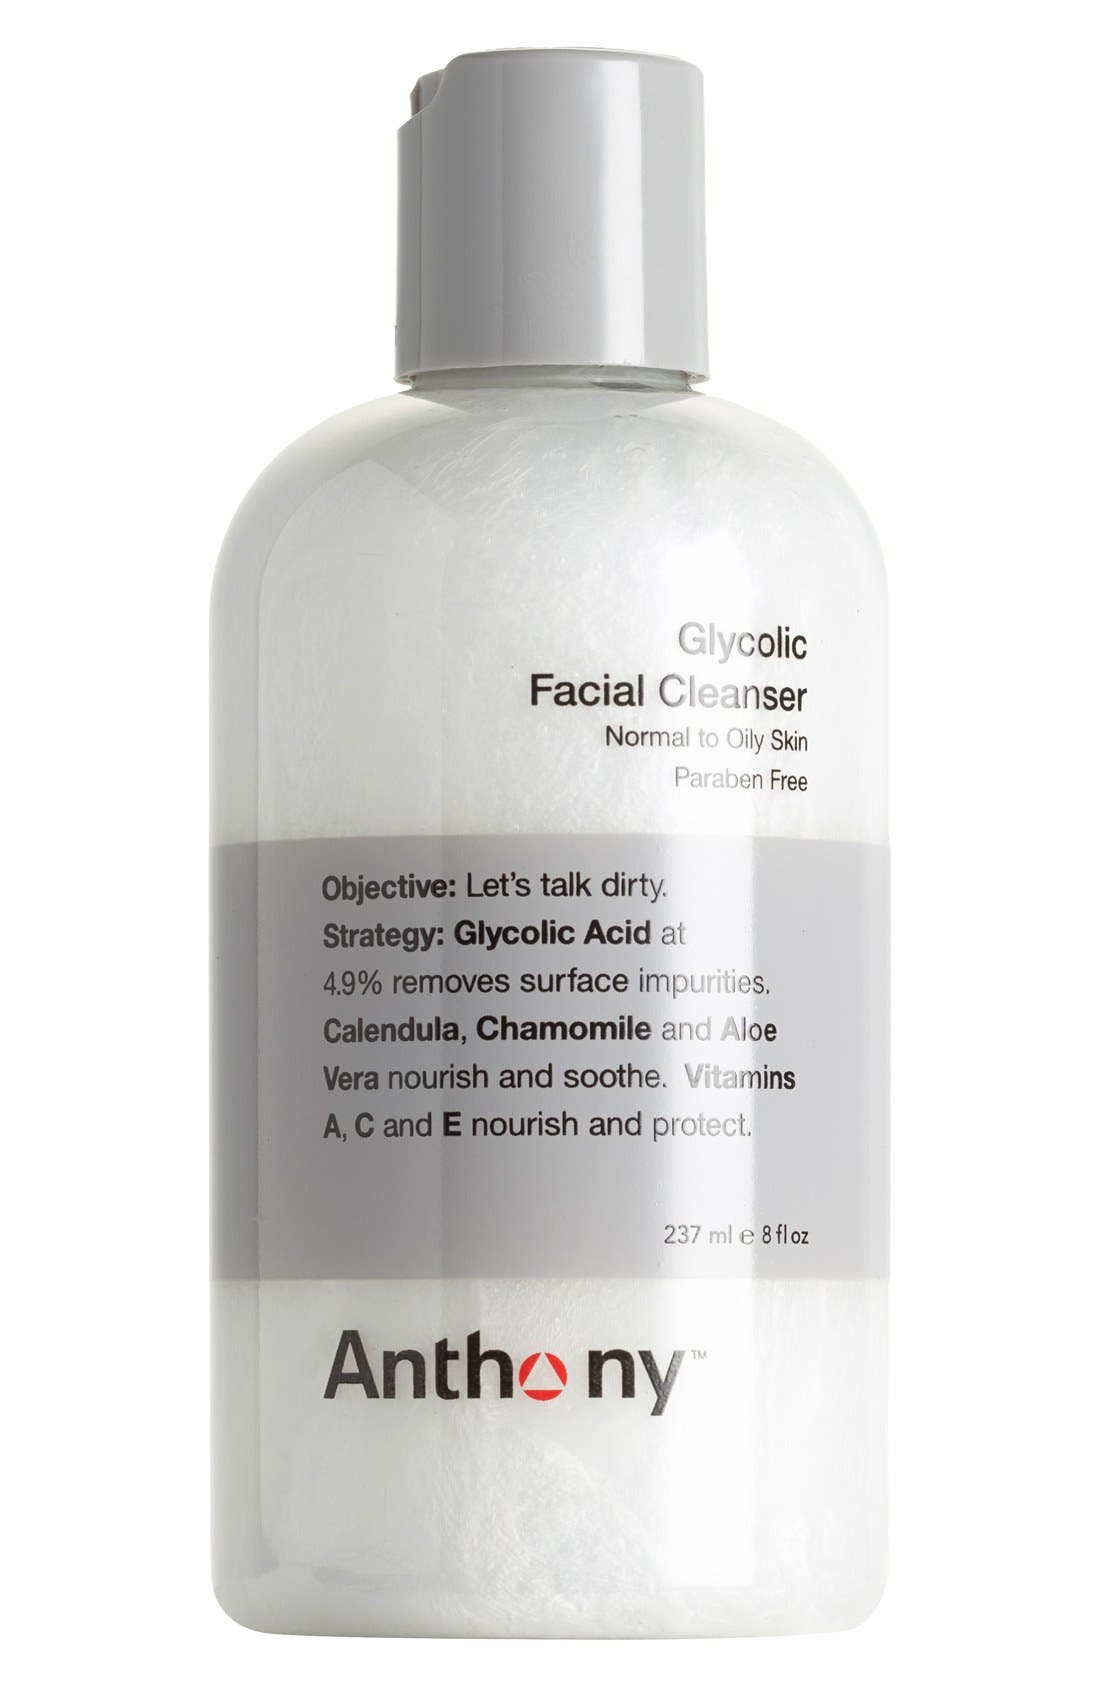 Anthony™ Glycolic Facial Cleanser